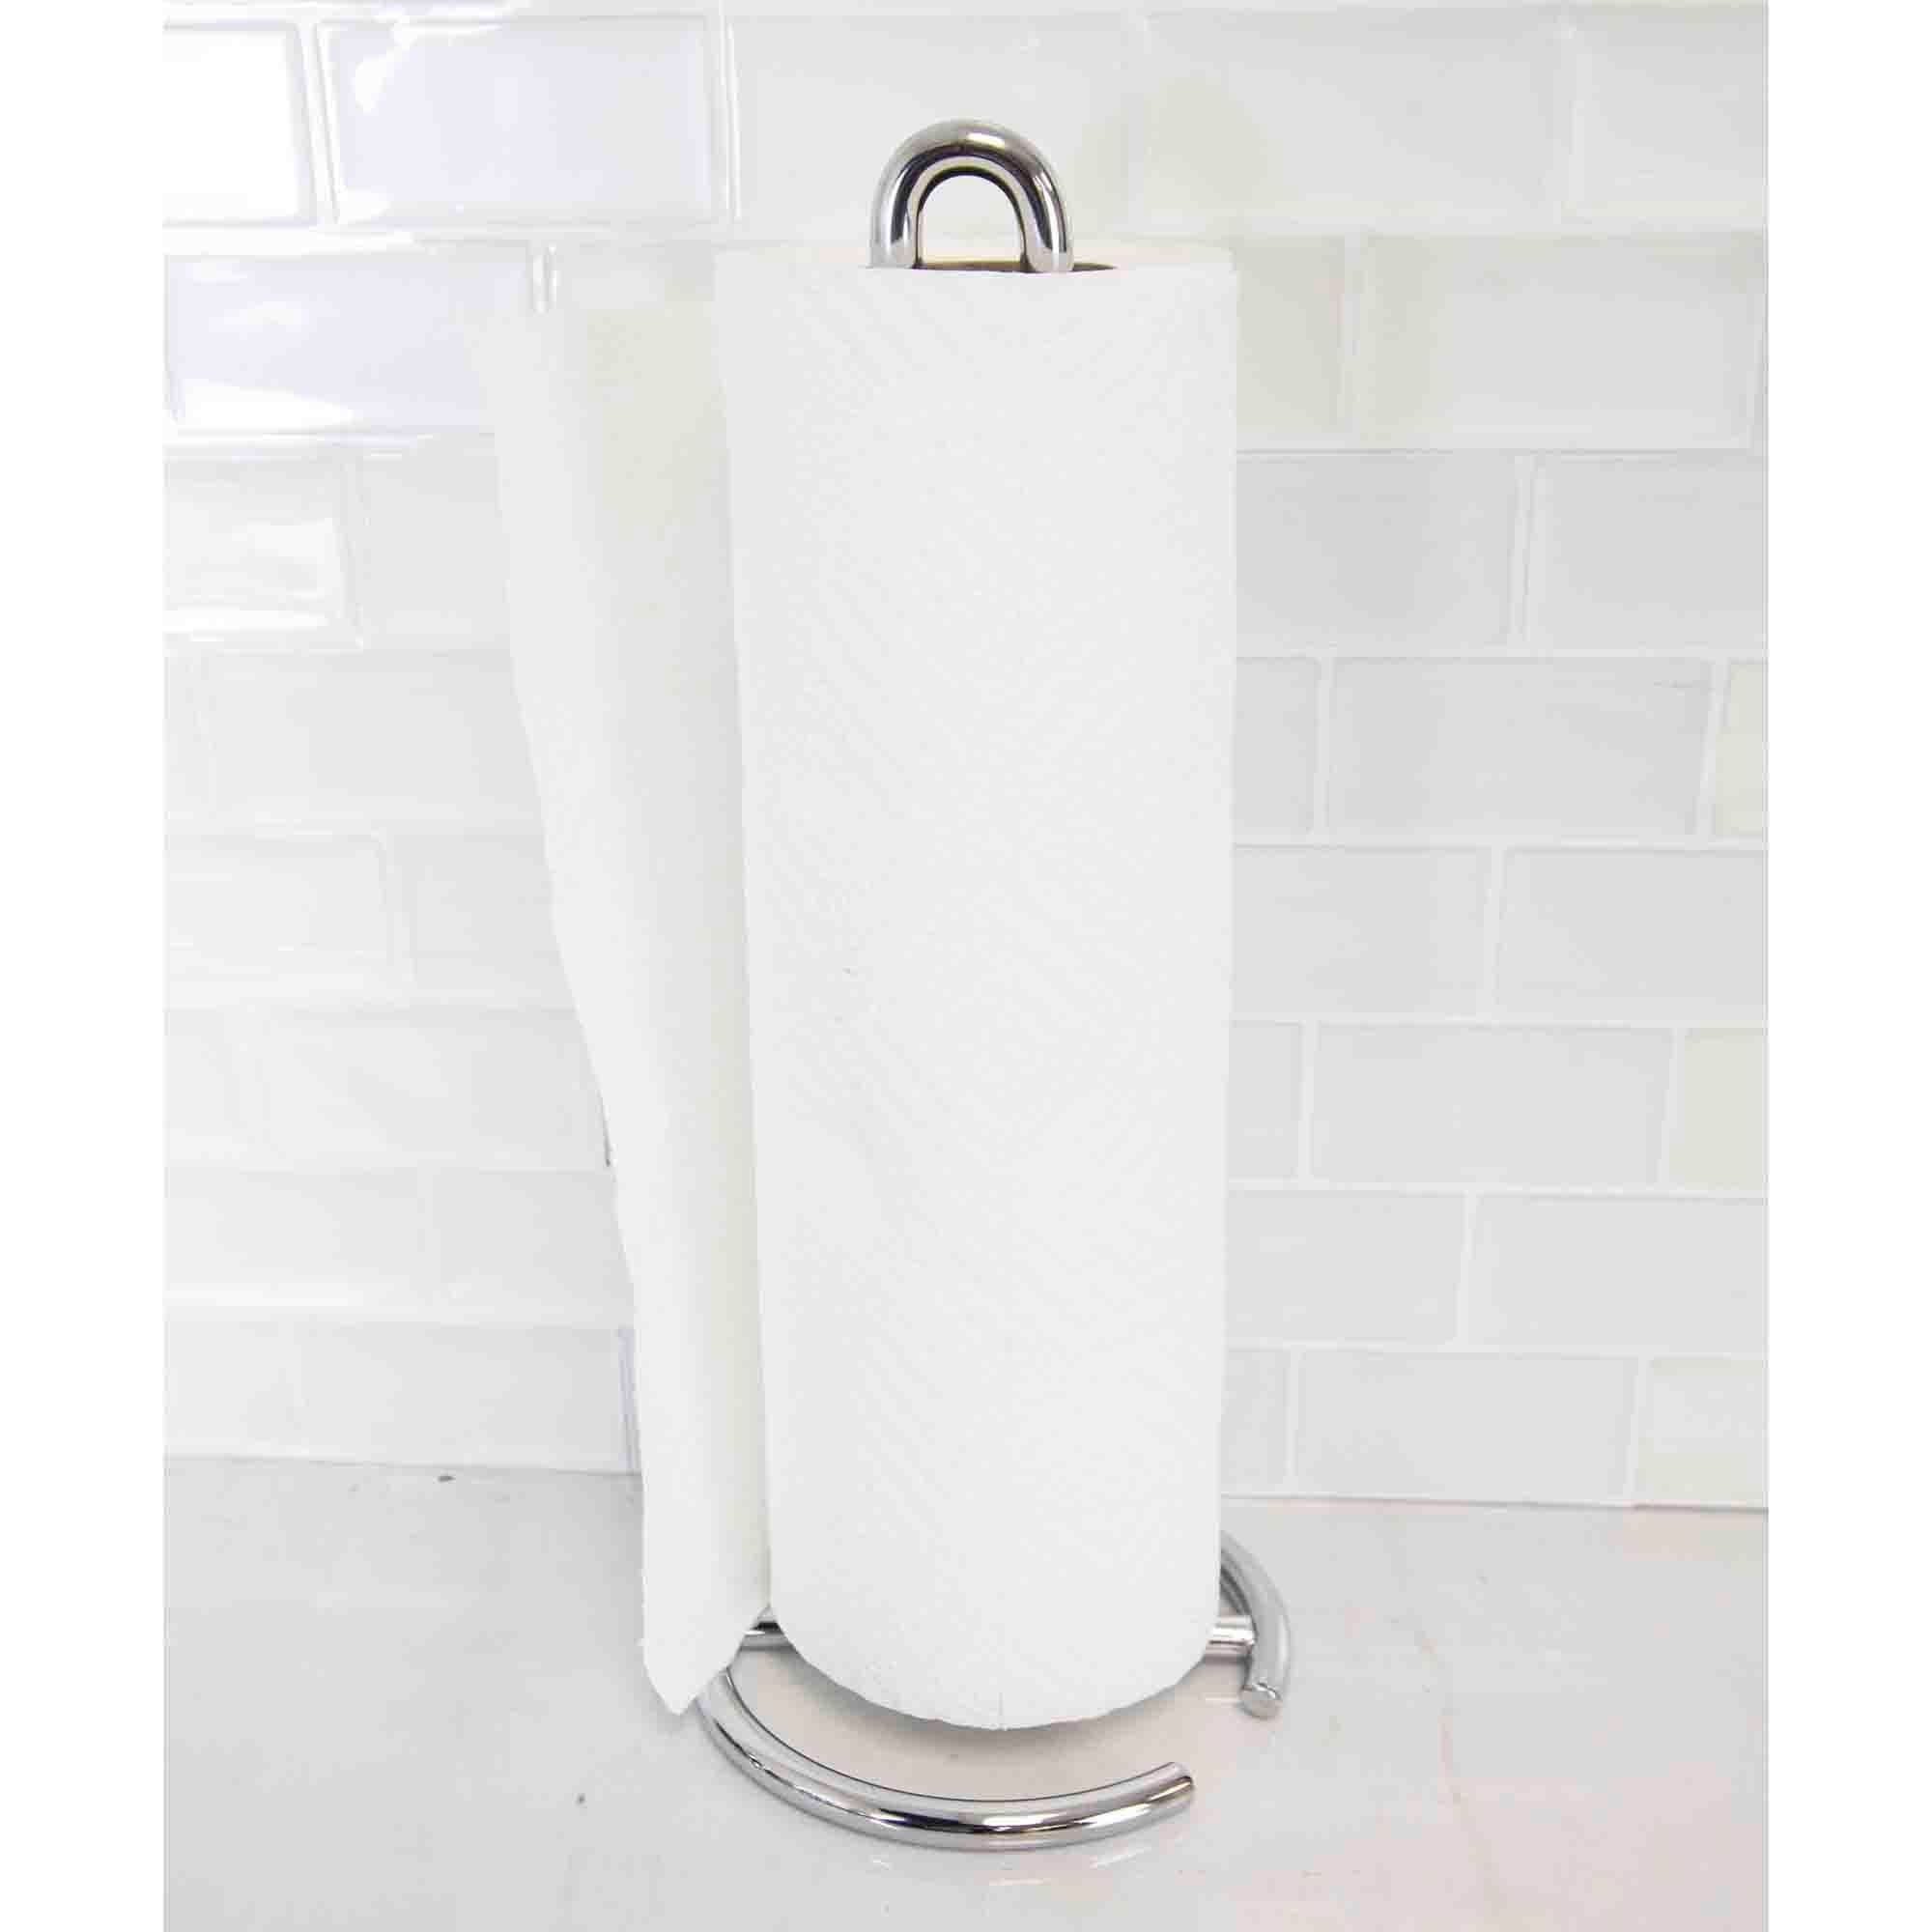 Simplicity Collection Free-Standing Paper Towel Holder, Chrome